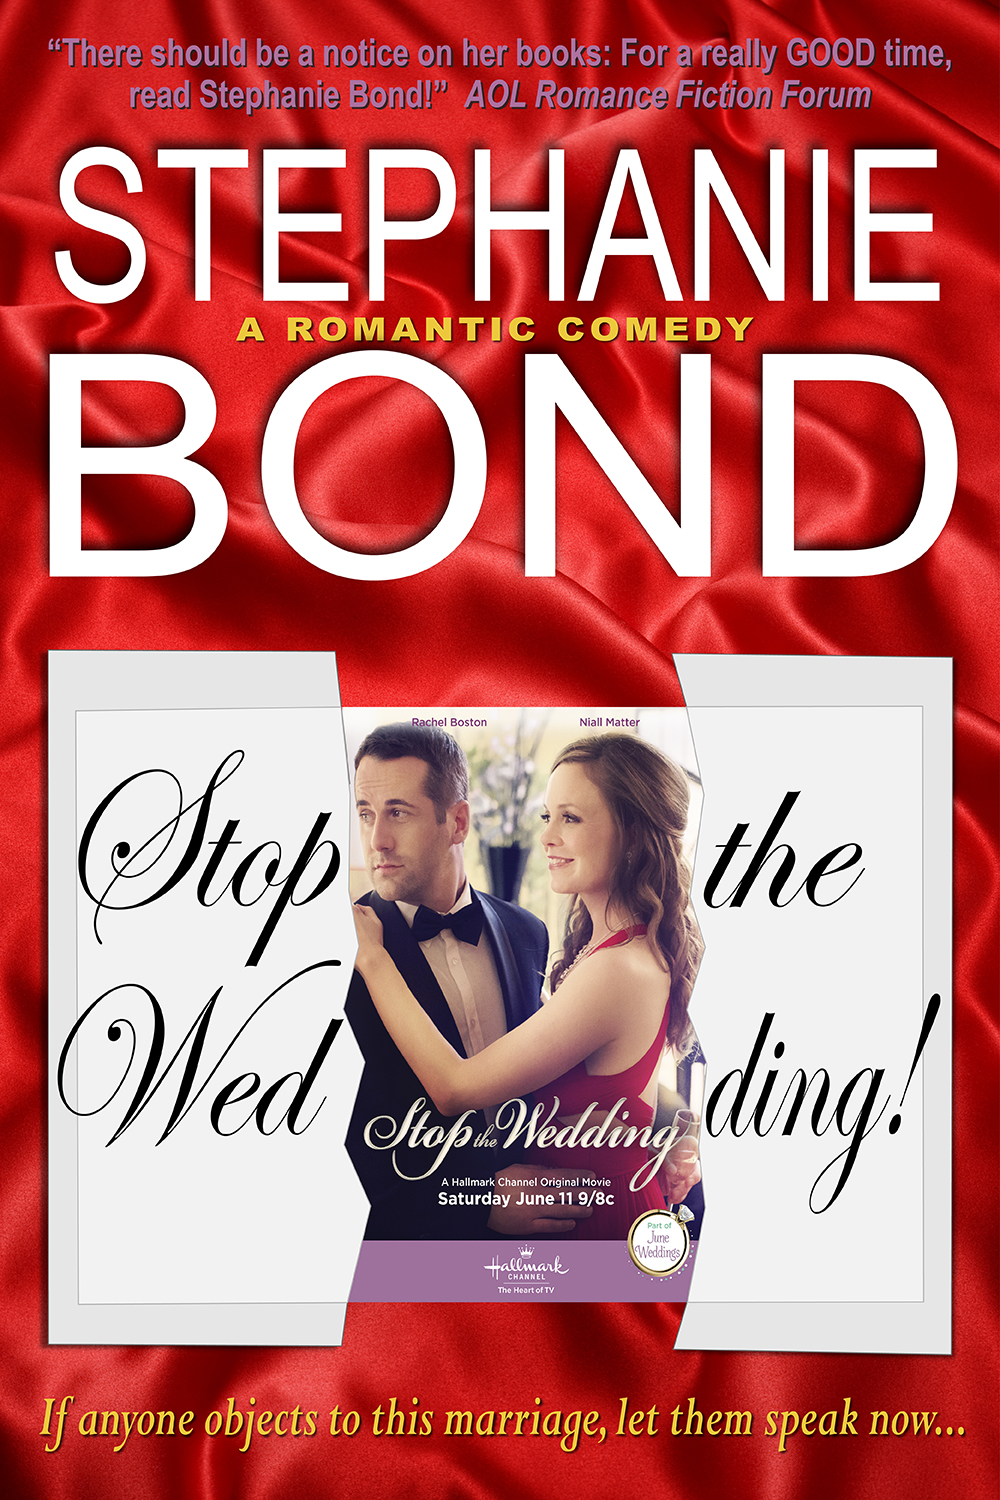 SAVE THE DATE! The Hallmark Channel movie of STOP THE